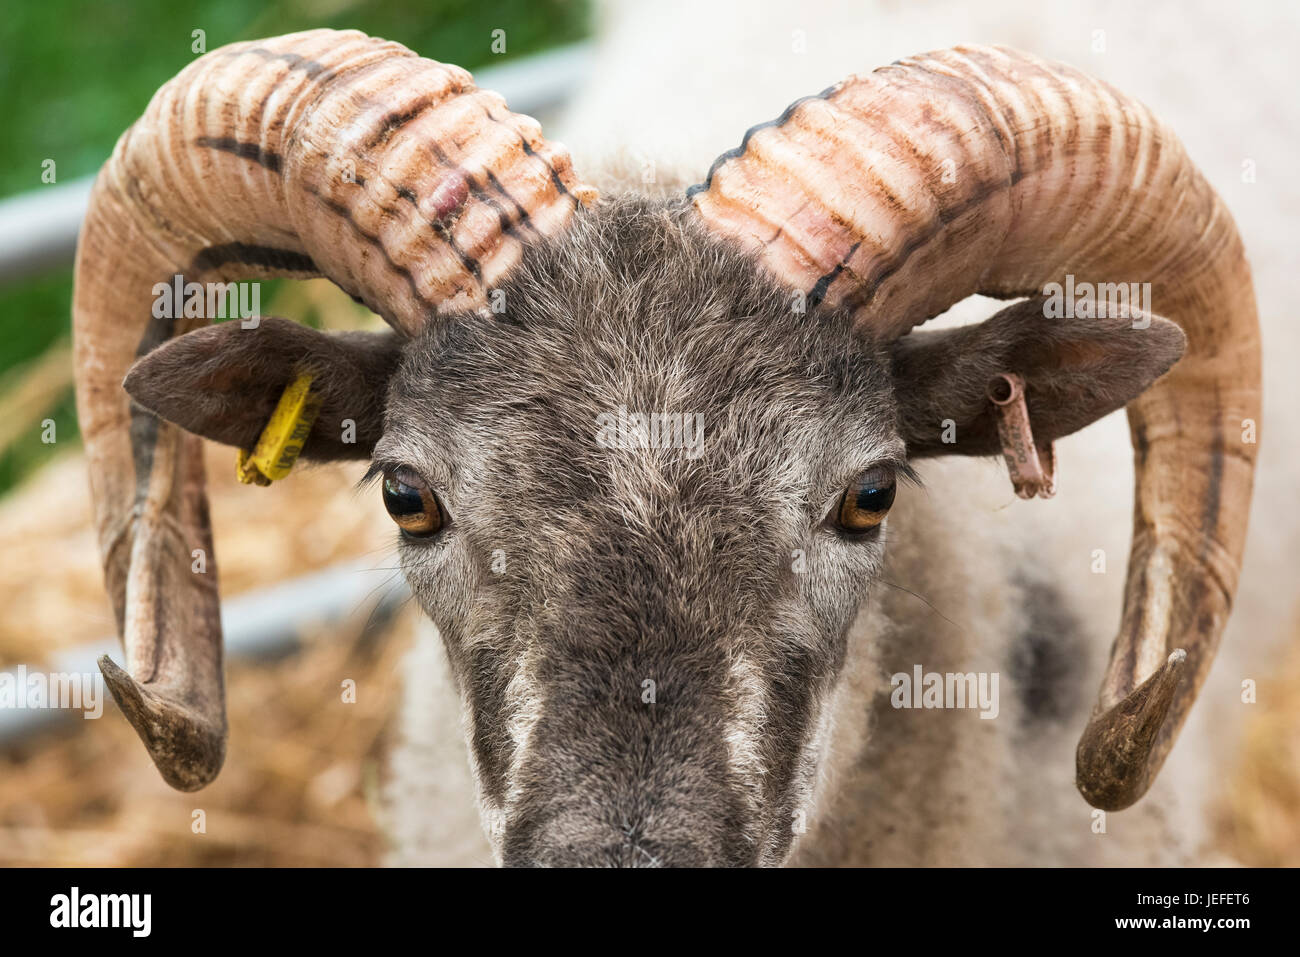 Ovis aries. Boreray sheep on show at the 2017 Royal Three Counties Show. Malvern, Worcestershire, UK - Stock Image